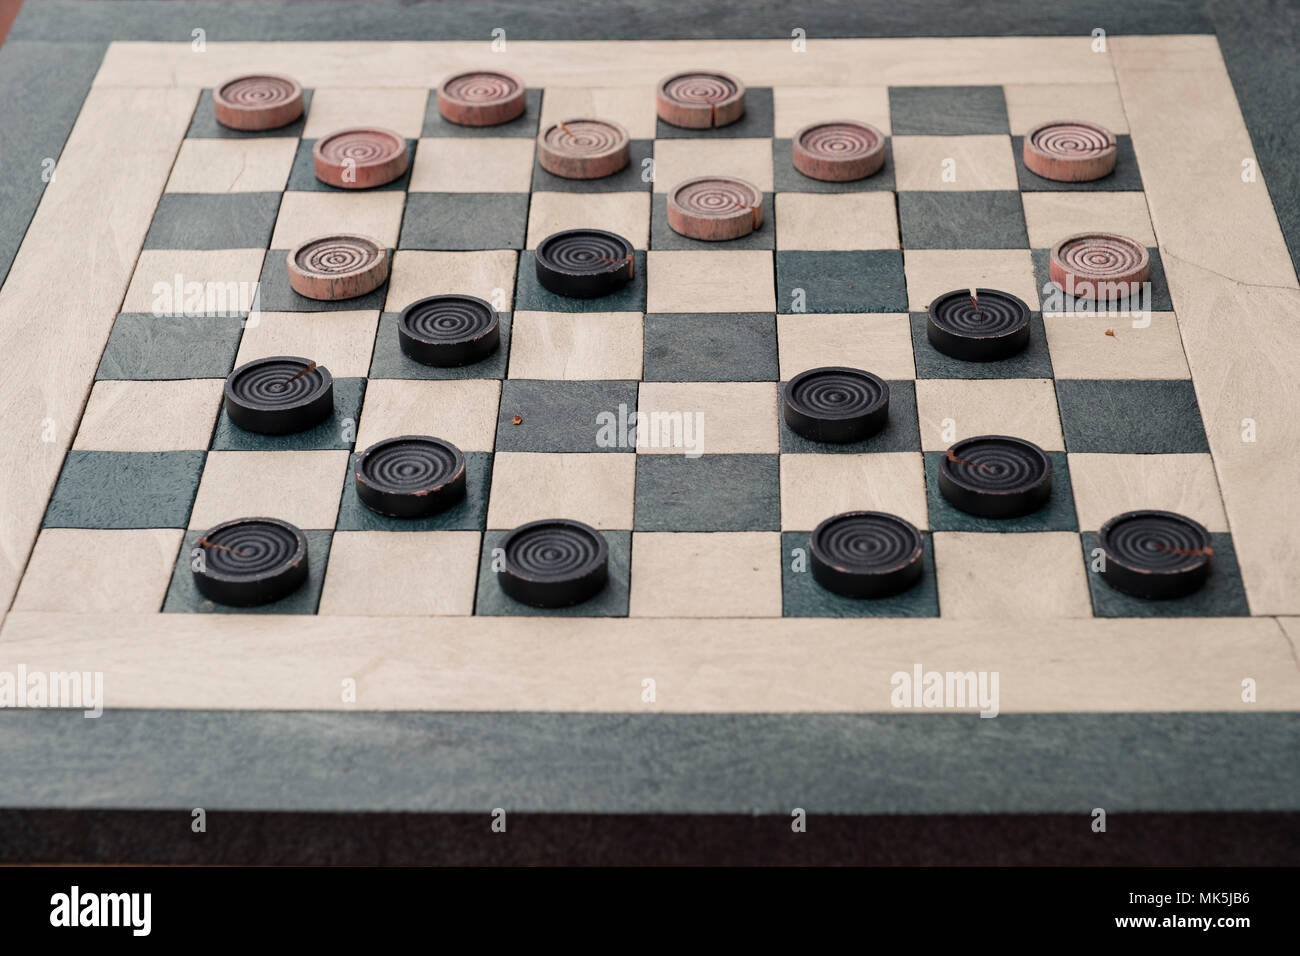 checkers game in public on sidewalk, step up and take a seat to play the game with a friend or stranger Stock Photo